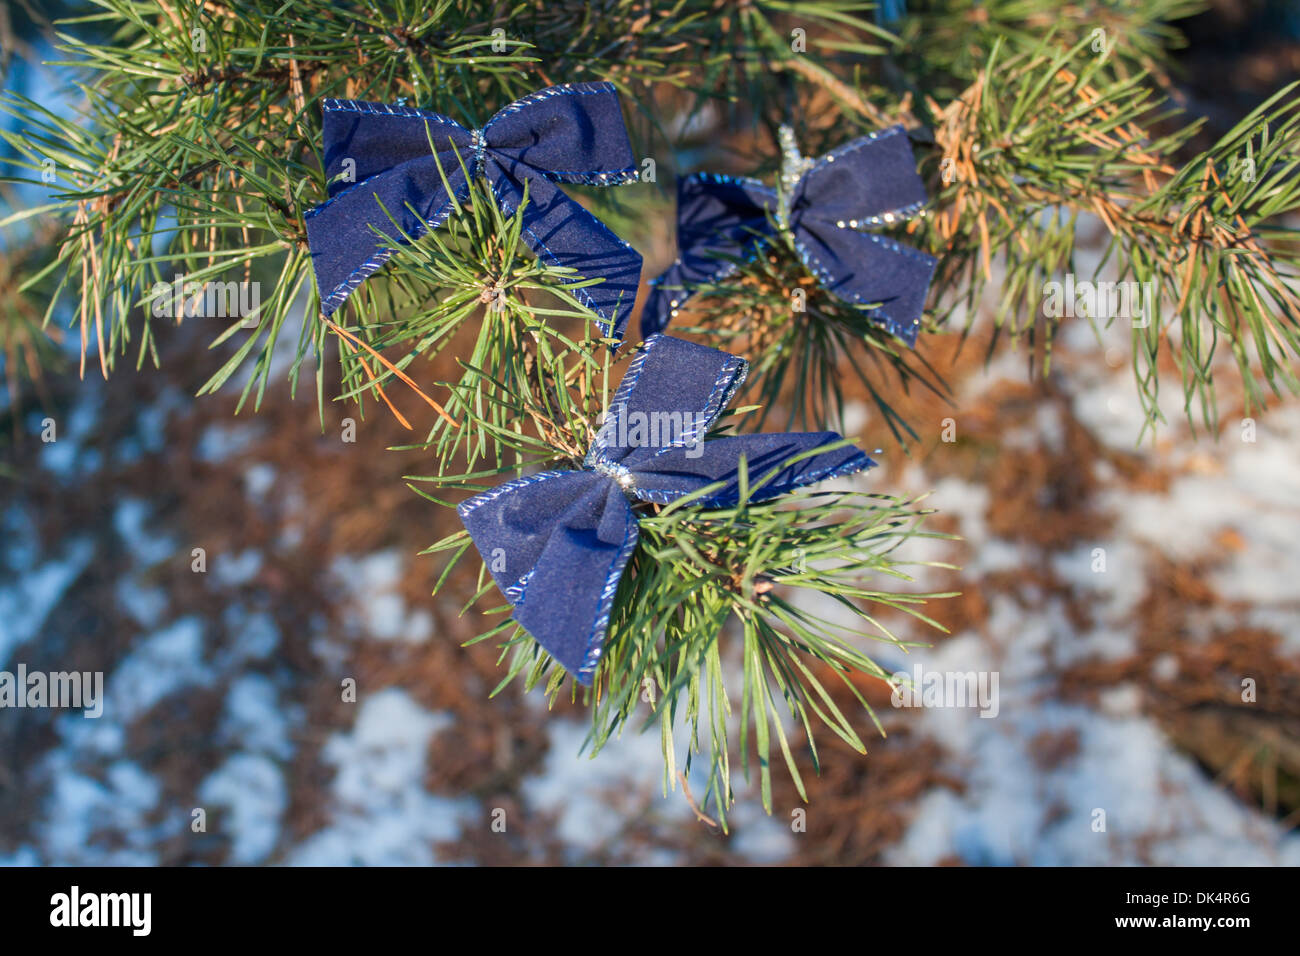 pine tree branch bows 'blue bow' Christmas ornament snow - Stock Image